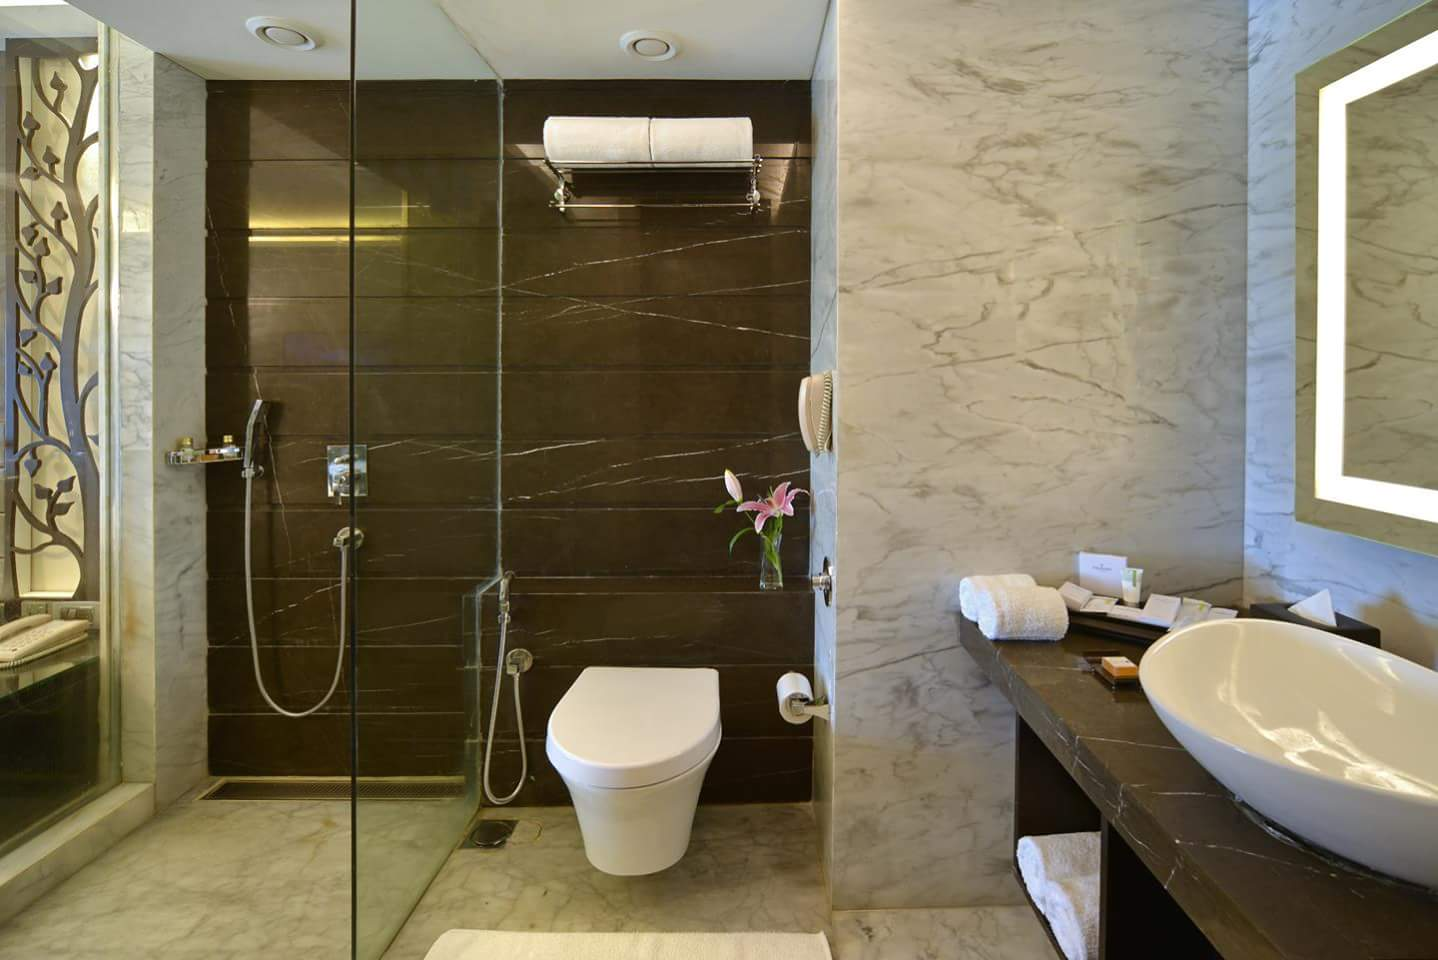 Bathroom With Brown Tiles by R. Gautam Jain Bathroom Modern | Interior Design Photos & Ideas